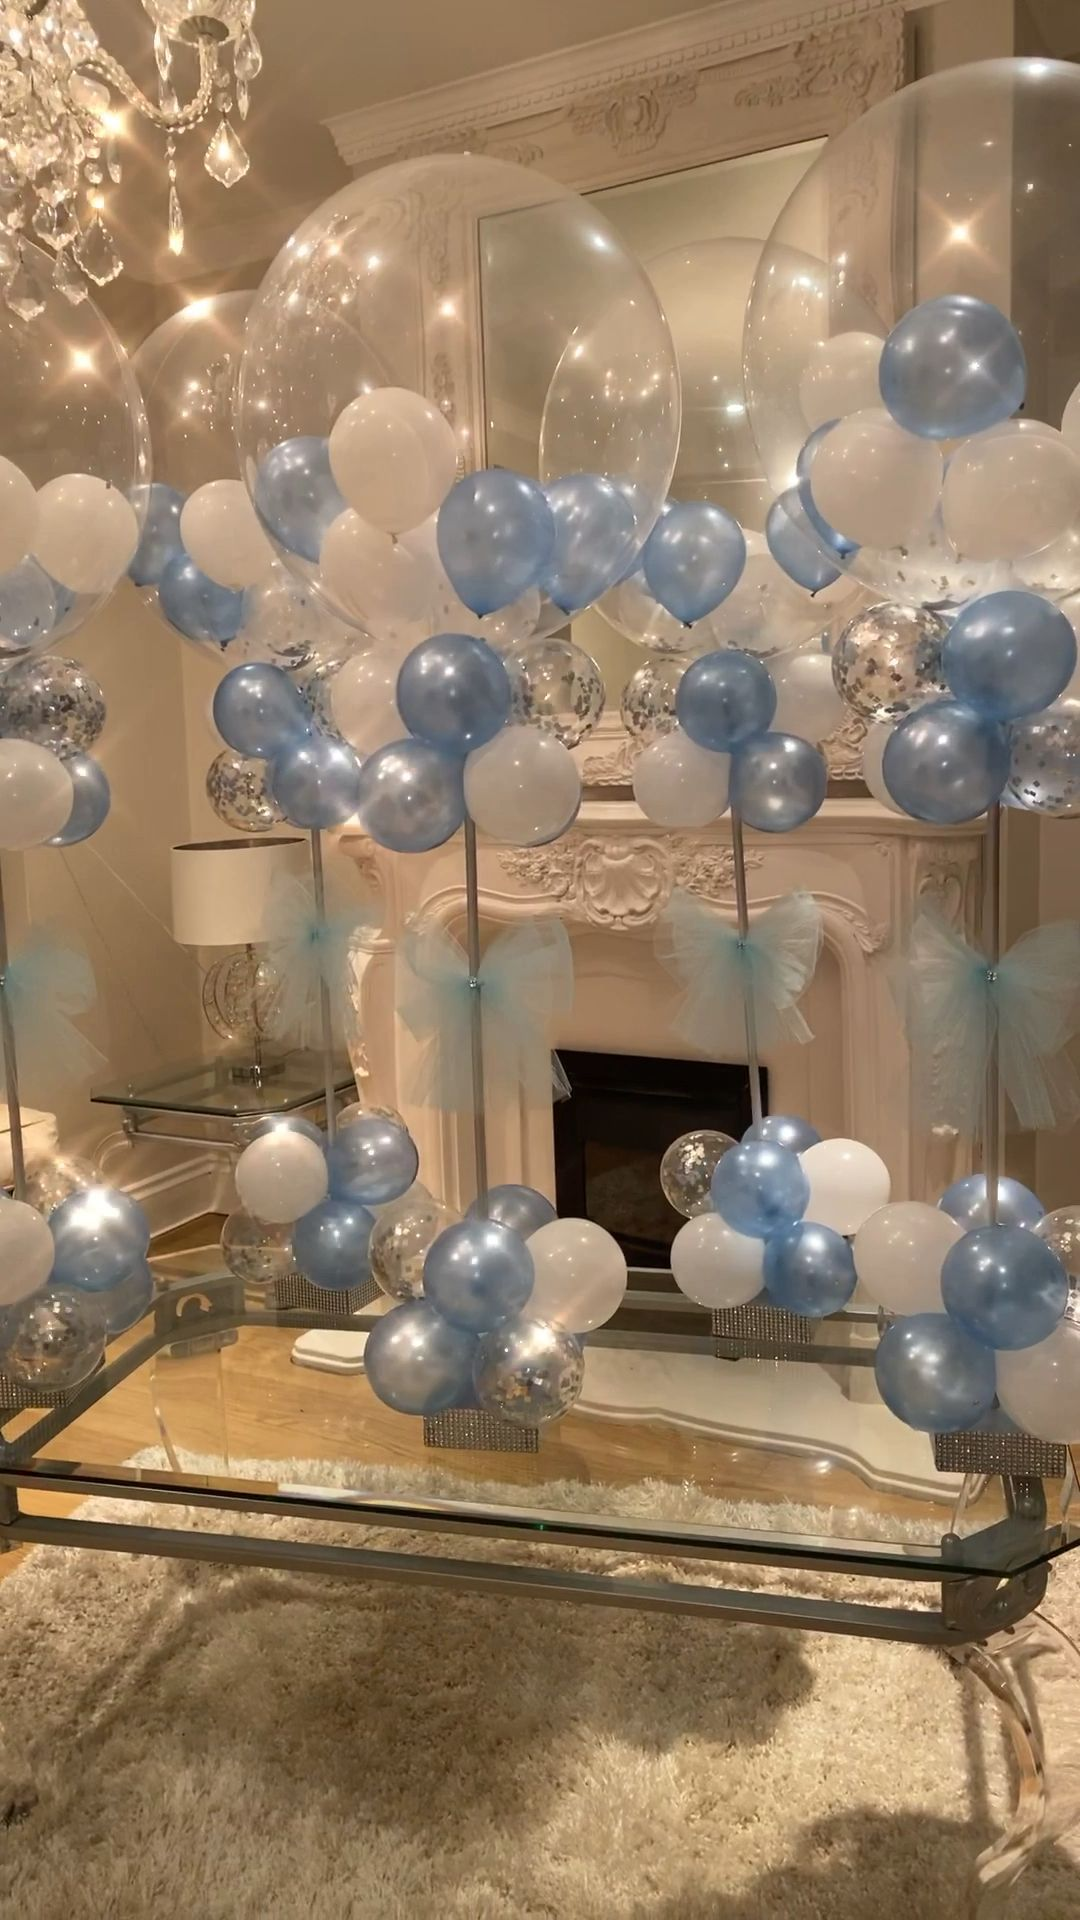 Balloon ideas - #balloon #ideas - #DecorationGraduation